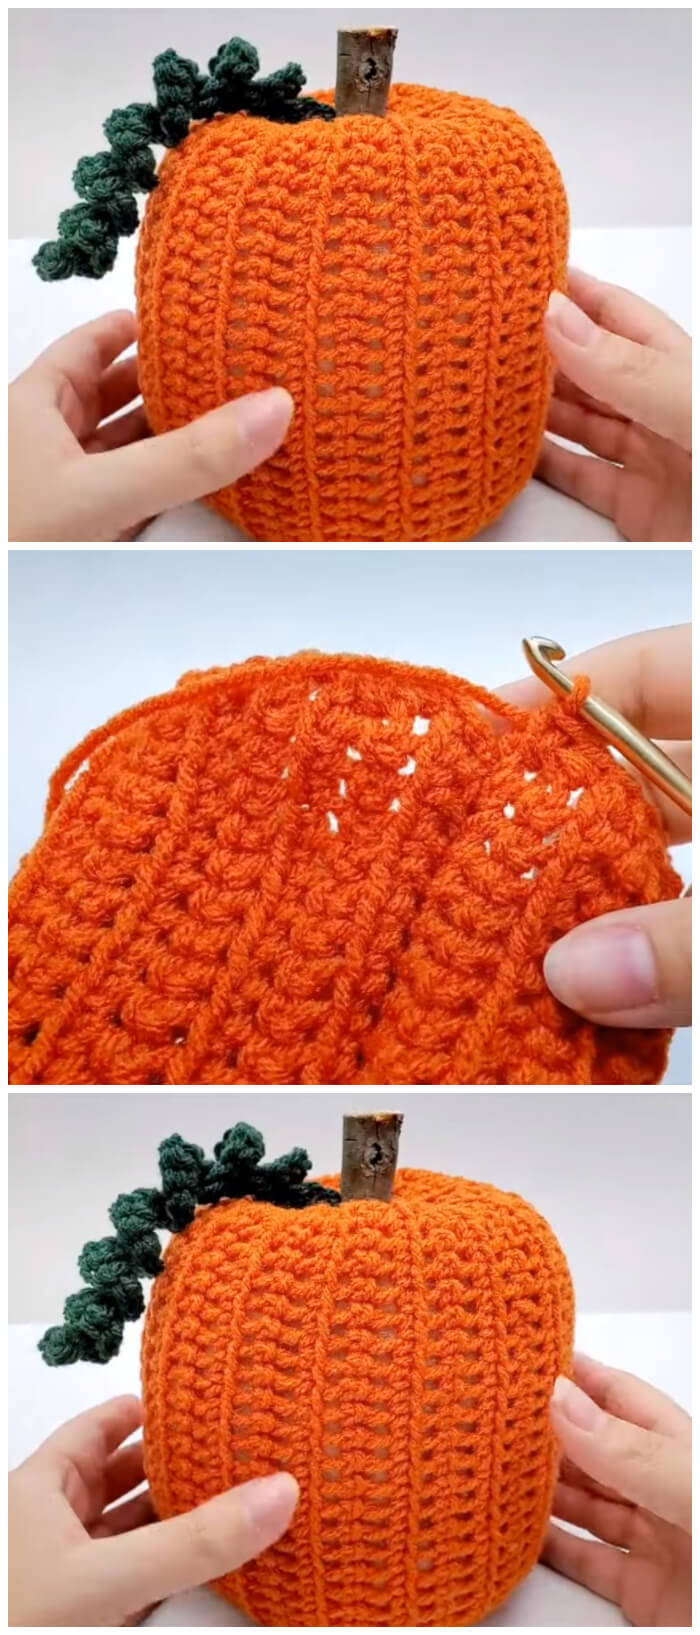 Learn how to crochet this Easy Crochet 3D Pumpkin for decoration. you can make this crochet pumpkin and size by adjusting the chain. Follow this easy crochet tutorial by bag o day crochet to learn how to make your very own crochet pumpkin.